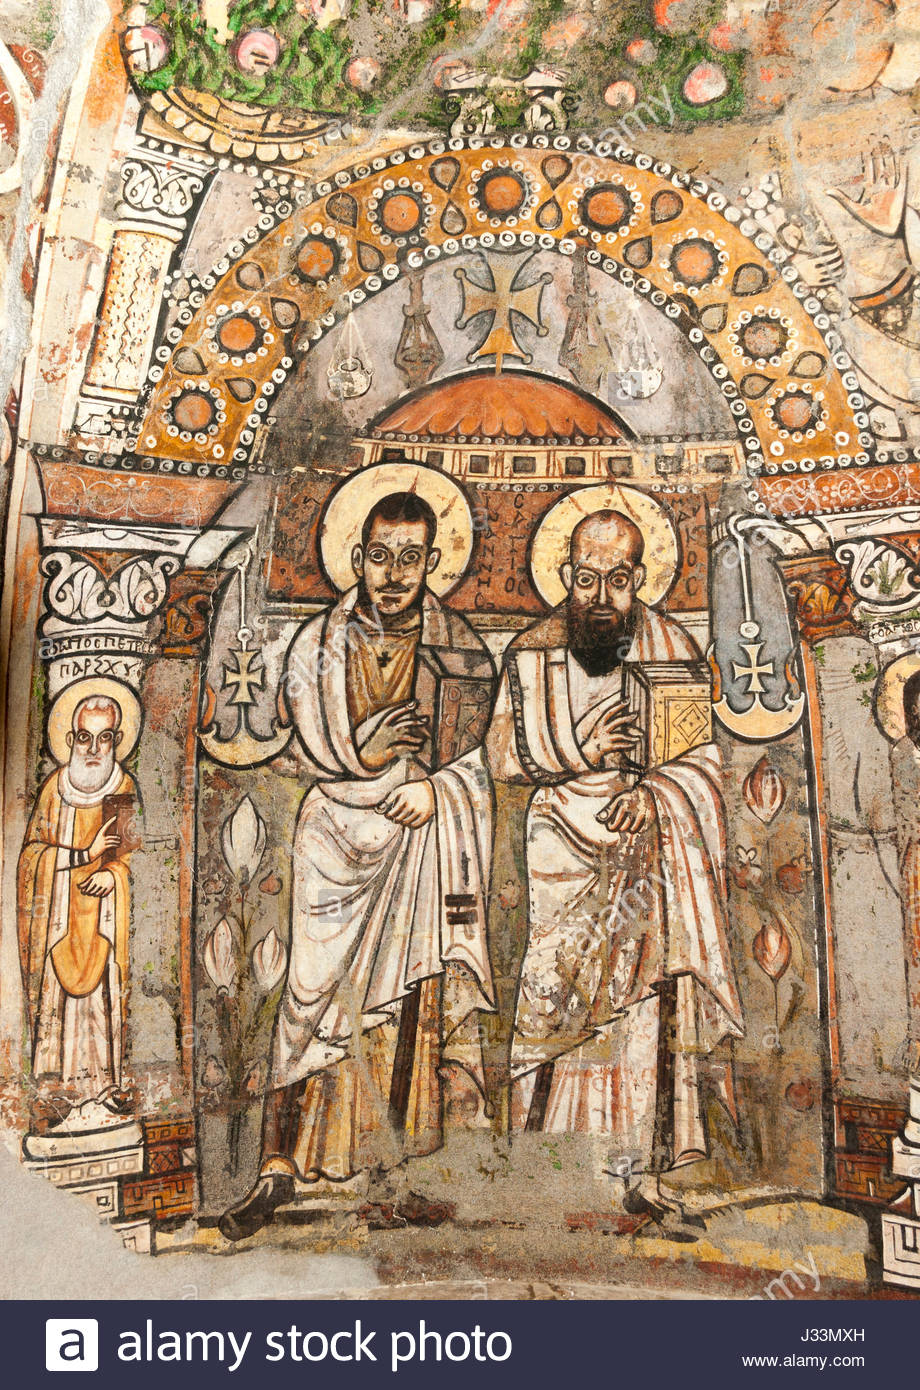 Red Monastery Sohag, late Antique early Christian Wall painting, Red Monastery, Sohag ...